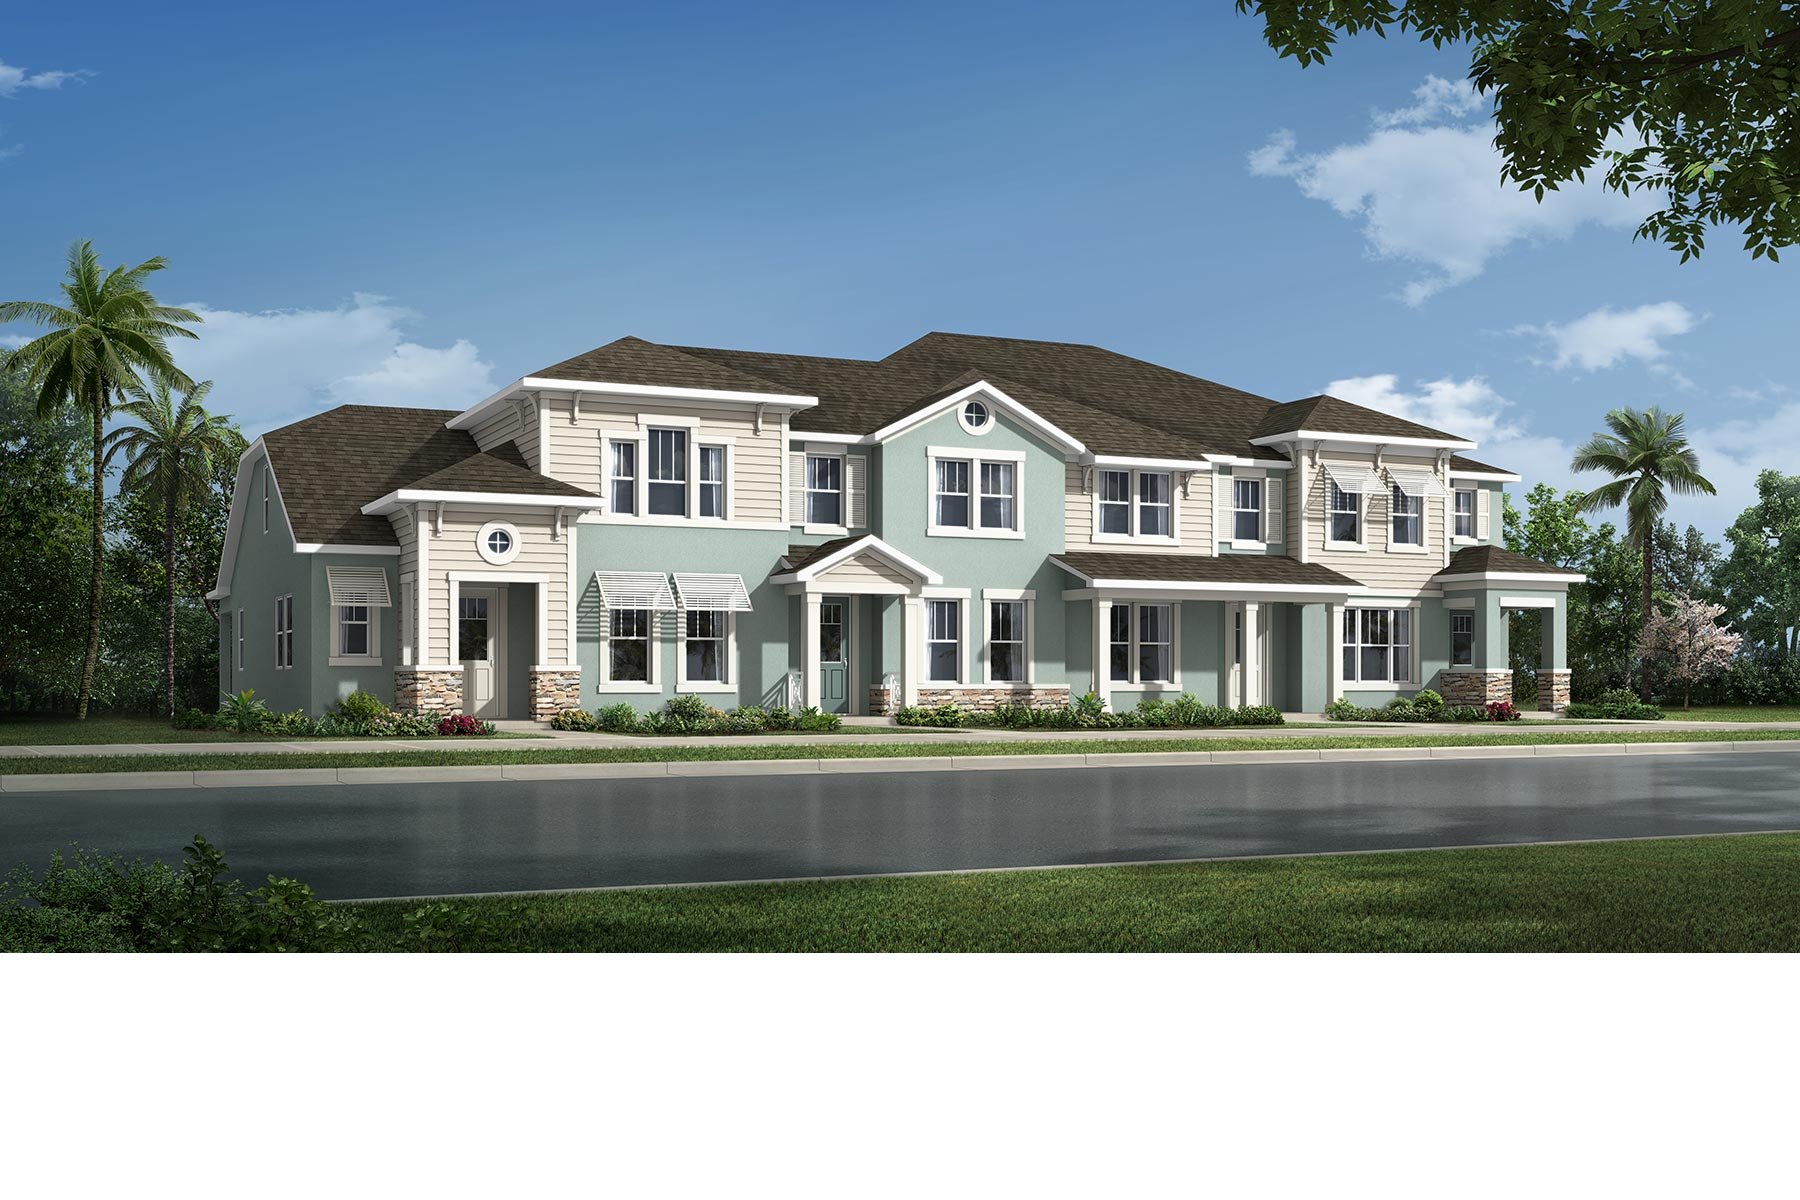 Francesca III Plan apr-25---6119-block-2-co---6800 at Randal Walk in Orlando Florida by Mattamy Homes